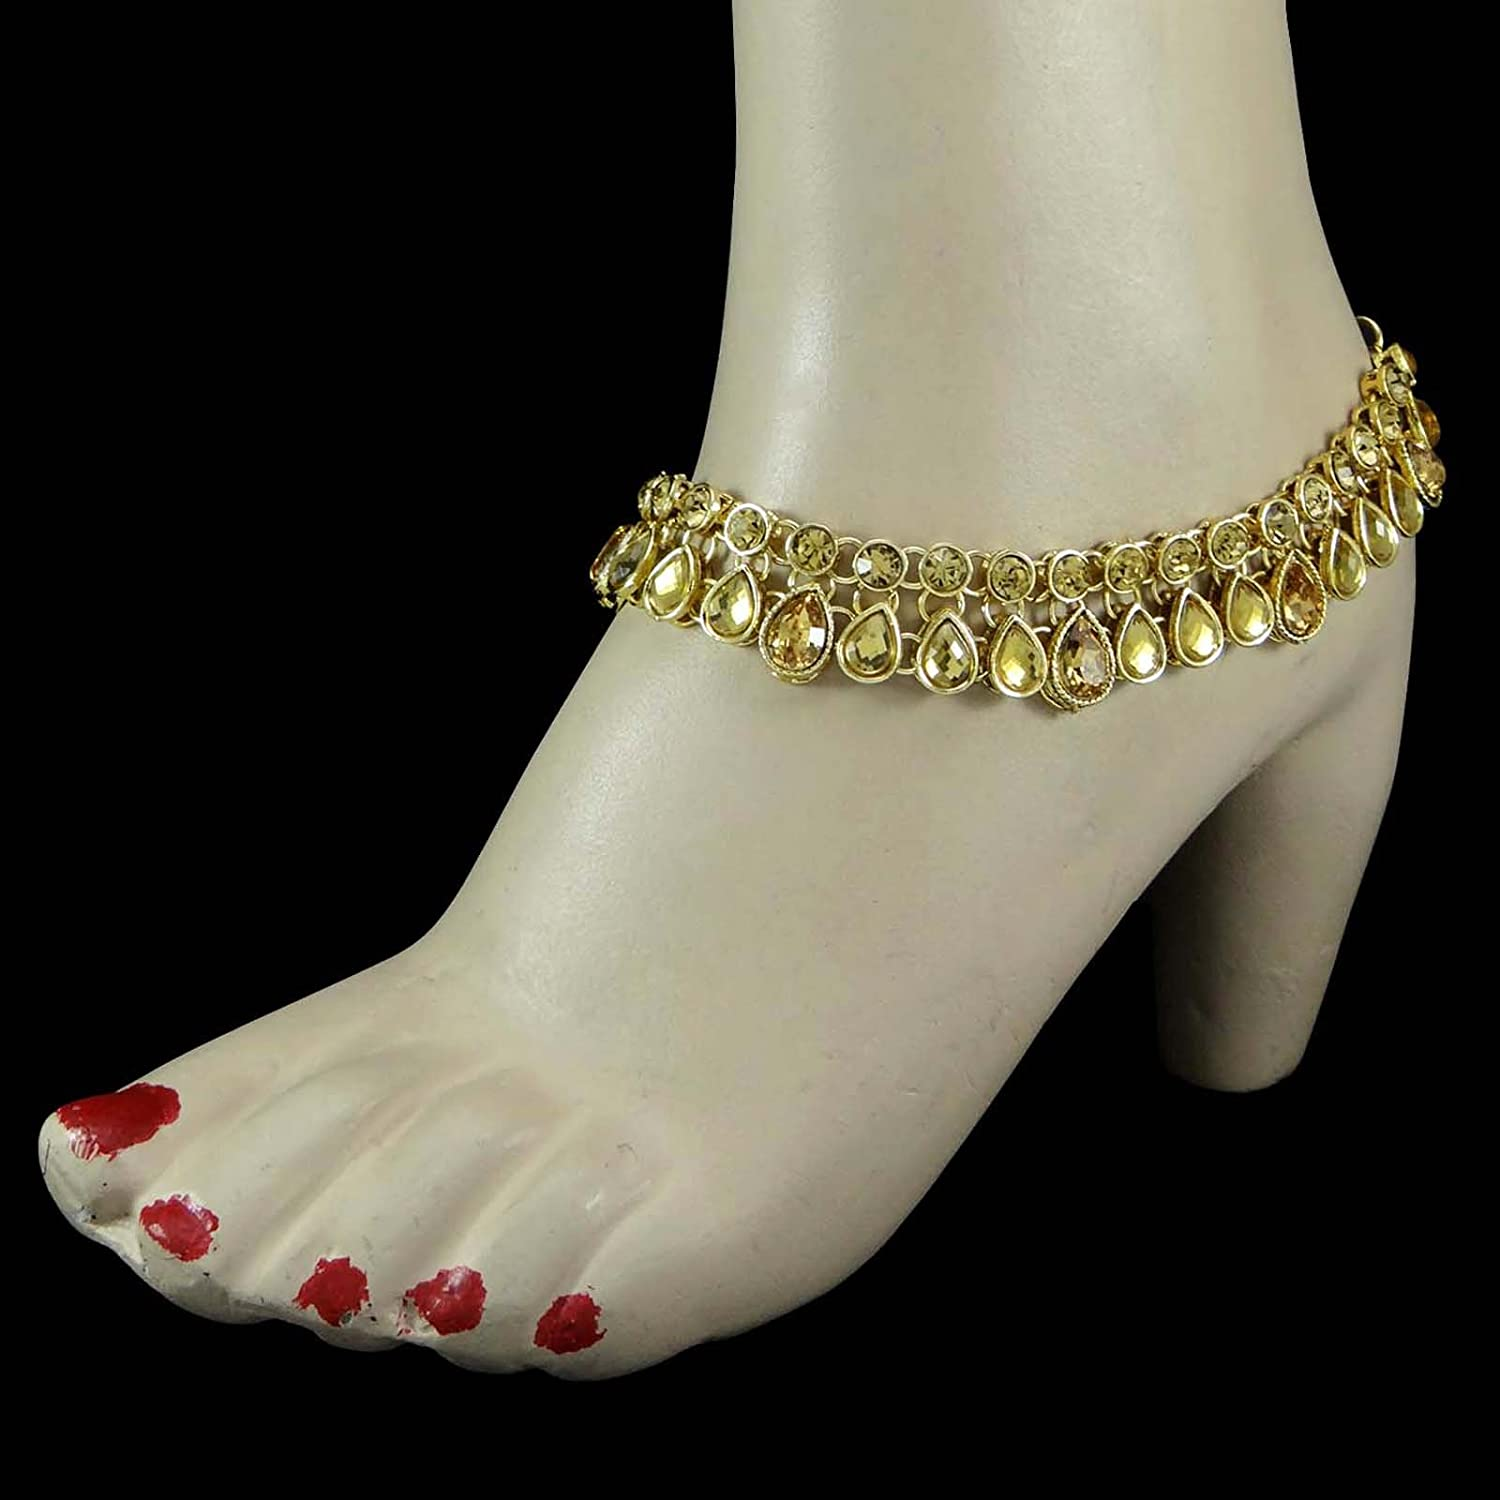 indian anklet bride jewelry pin bridal barefoot boho wedding beach silver heavenly sandals